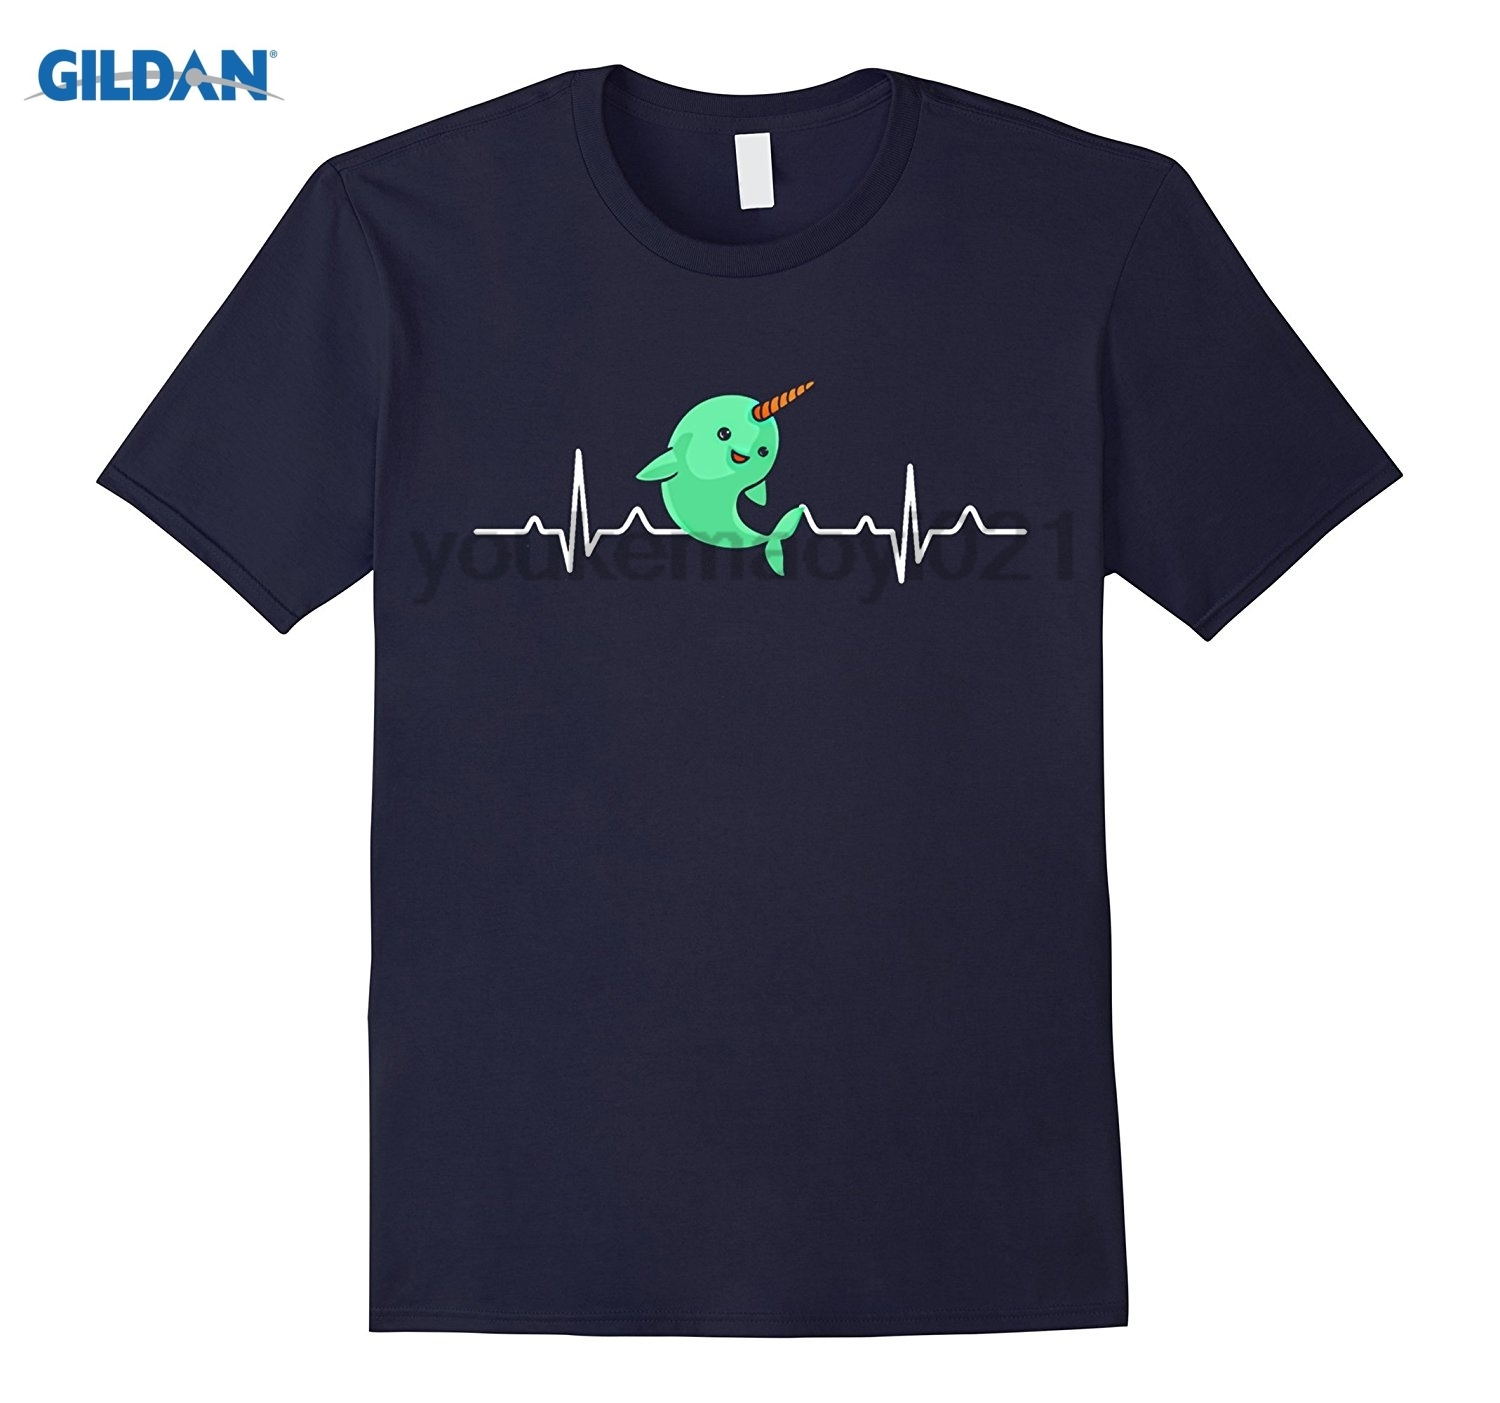 GILDAN The Be A Narwhal Shirt - Narwhal Heartbeat